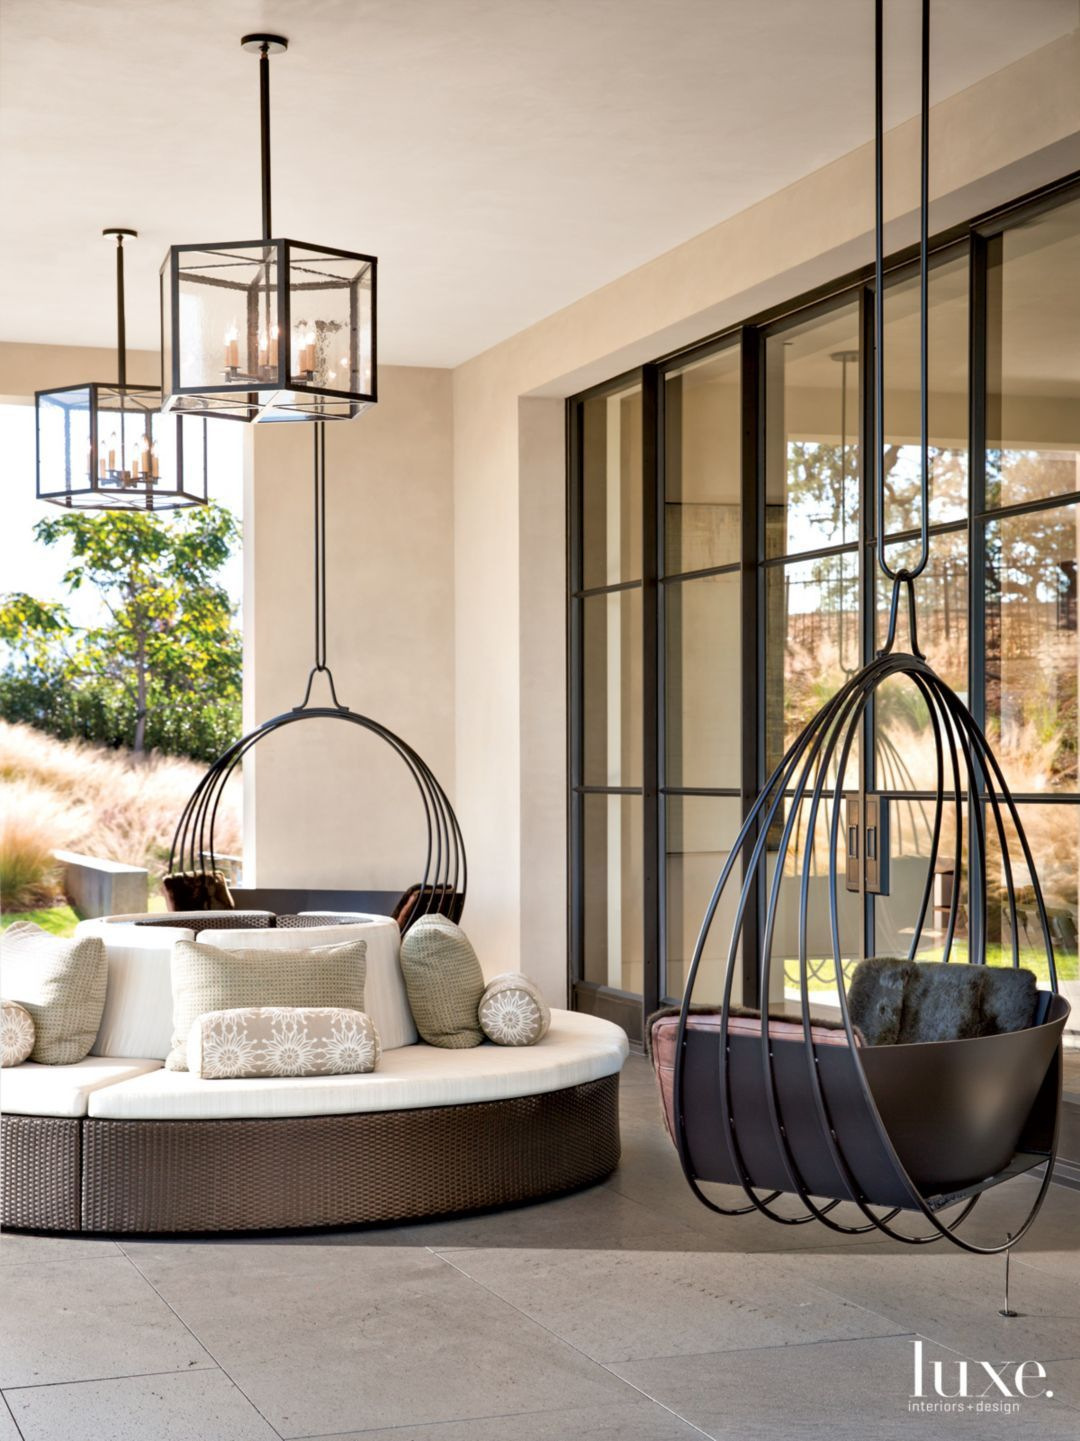 Modern Outdoor Seating From Top-Like Seats That Twirl Around ... concernant Salon De Jardin Design Luxe